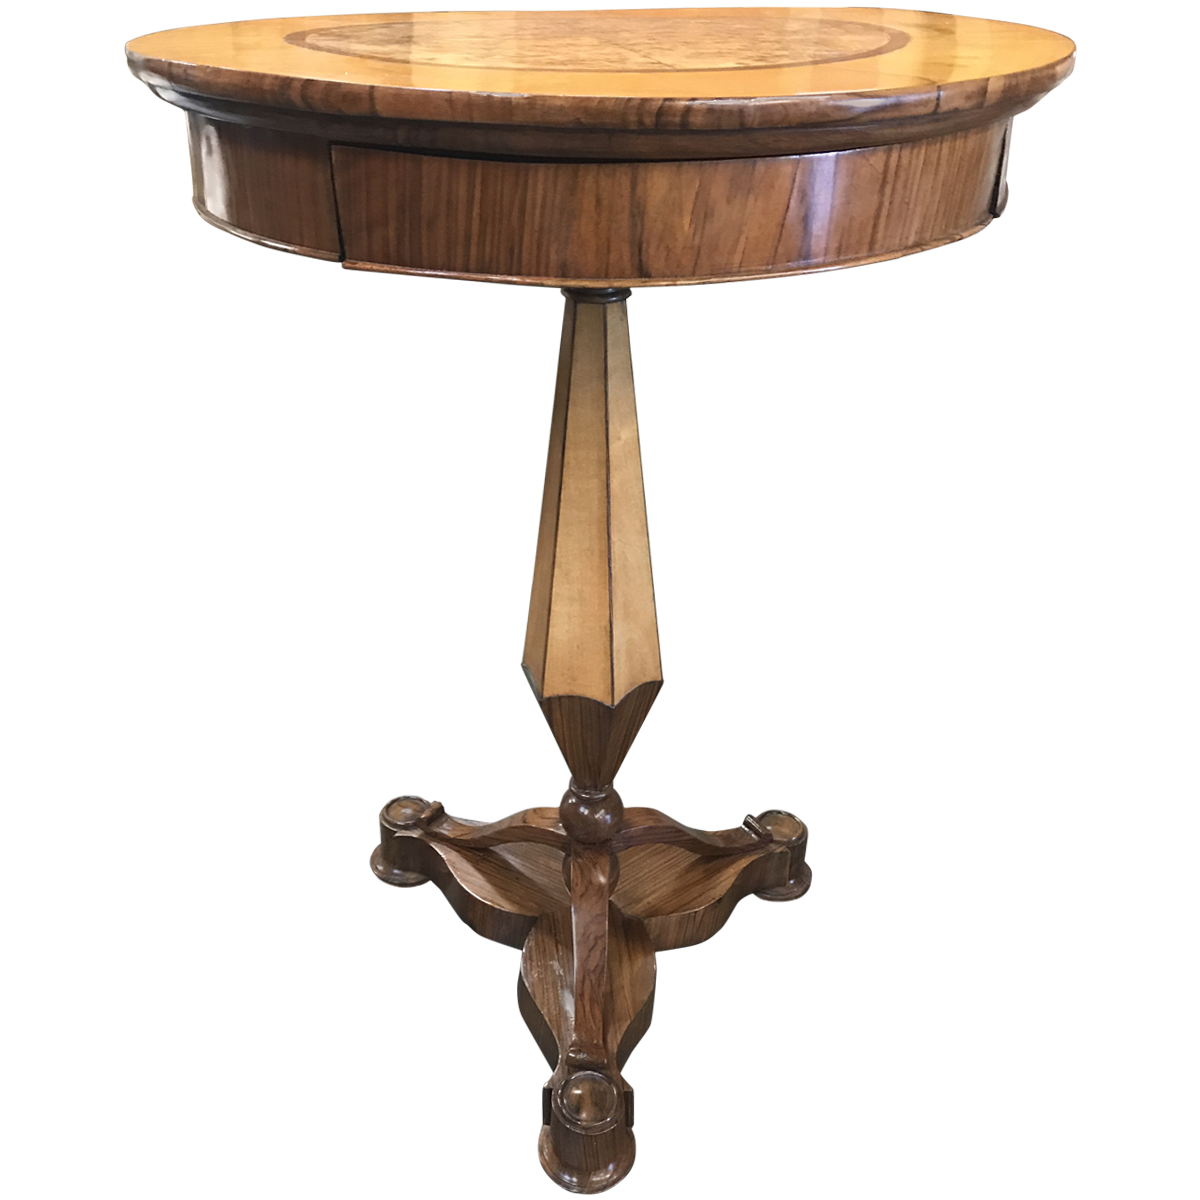 Clipart table night table. Excellent round pedestal side